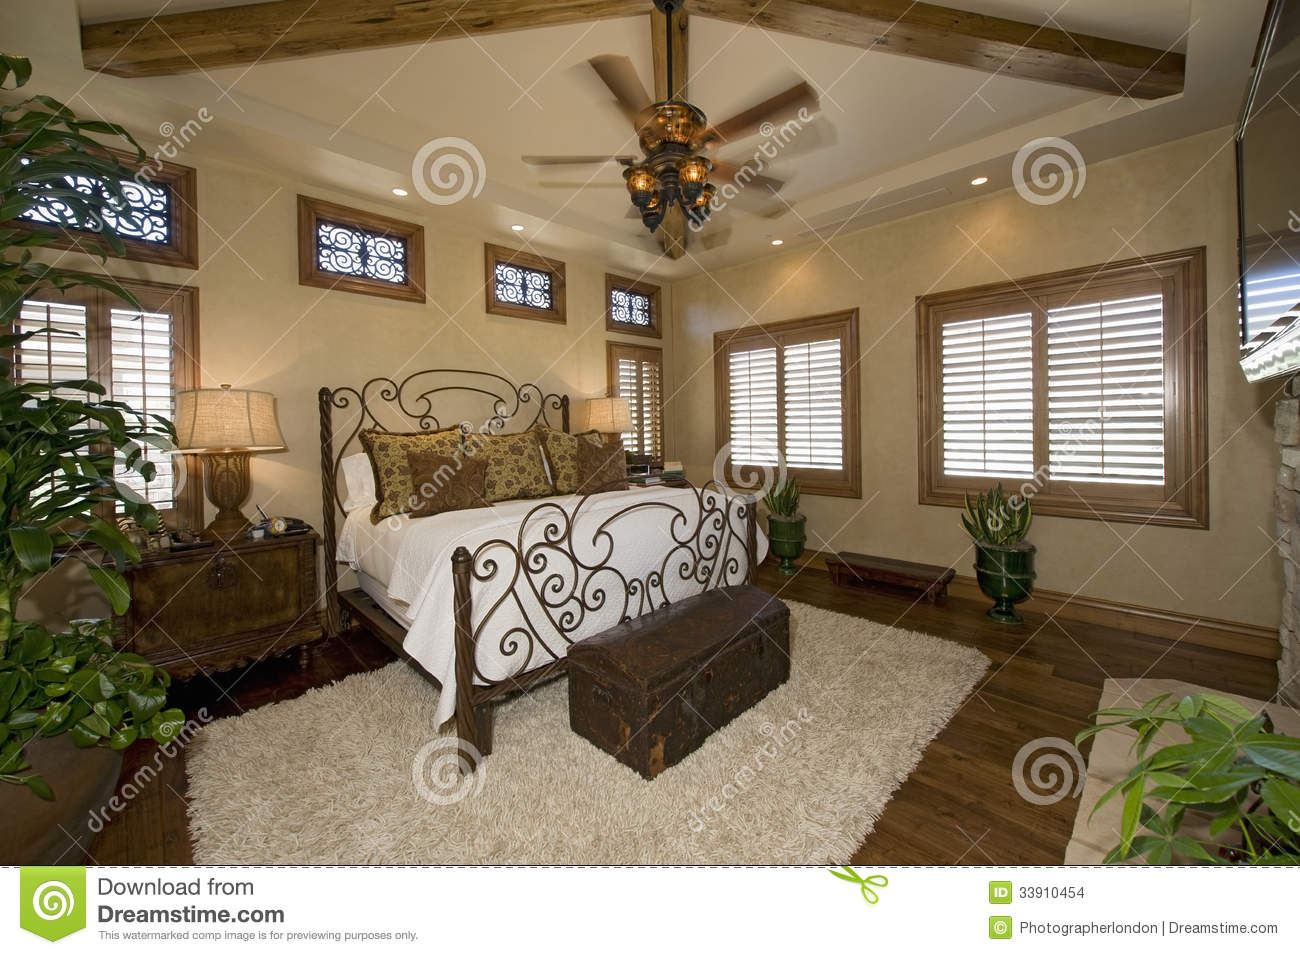 colonial style bedroom stock photo image of illuminated 33910454. Black Bedroom Furniture Sets. Home Design Ideas